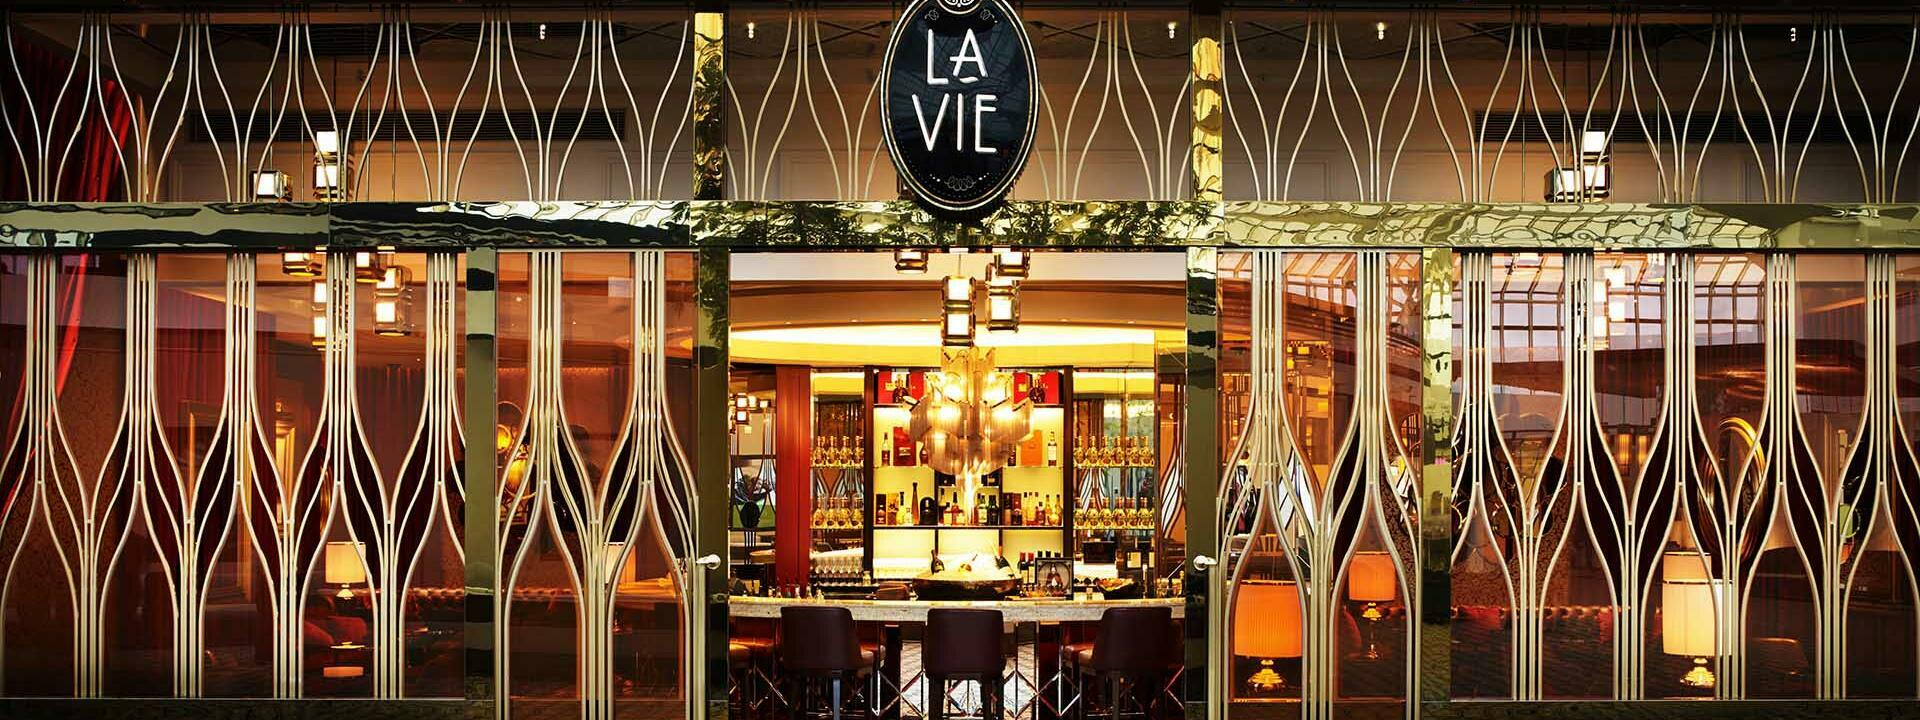 La Vie event room at Crown Towers Perth